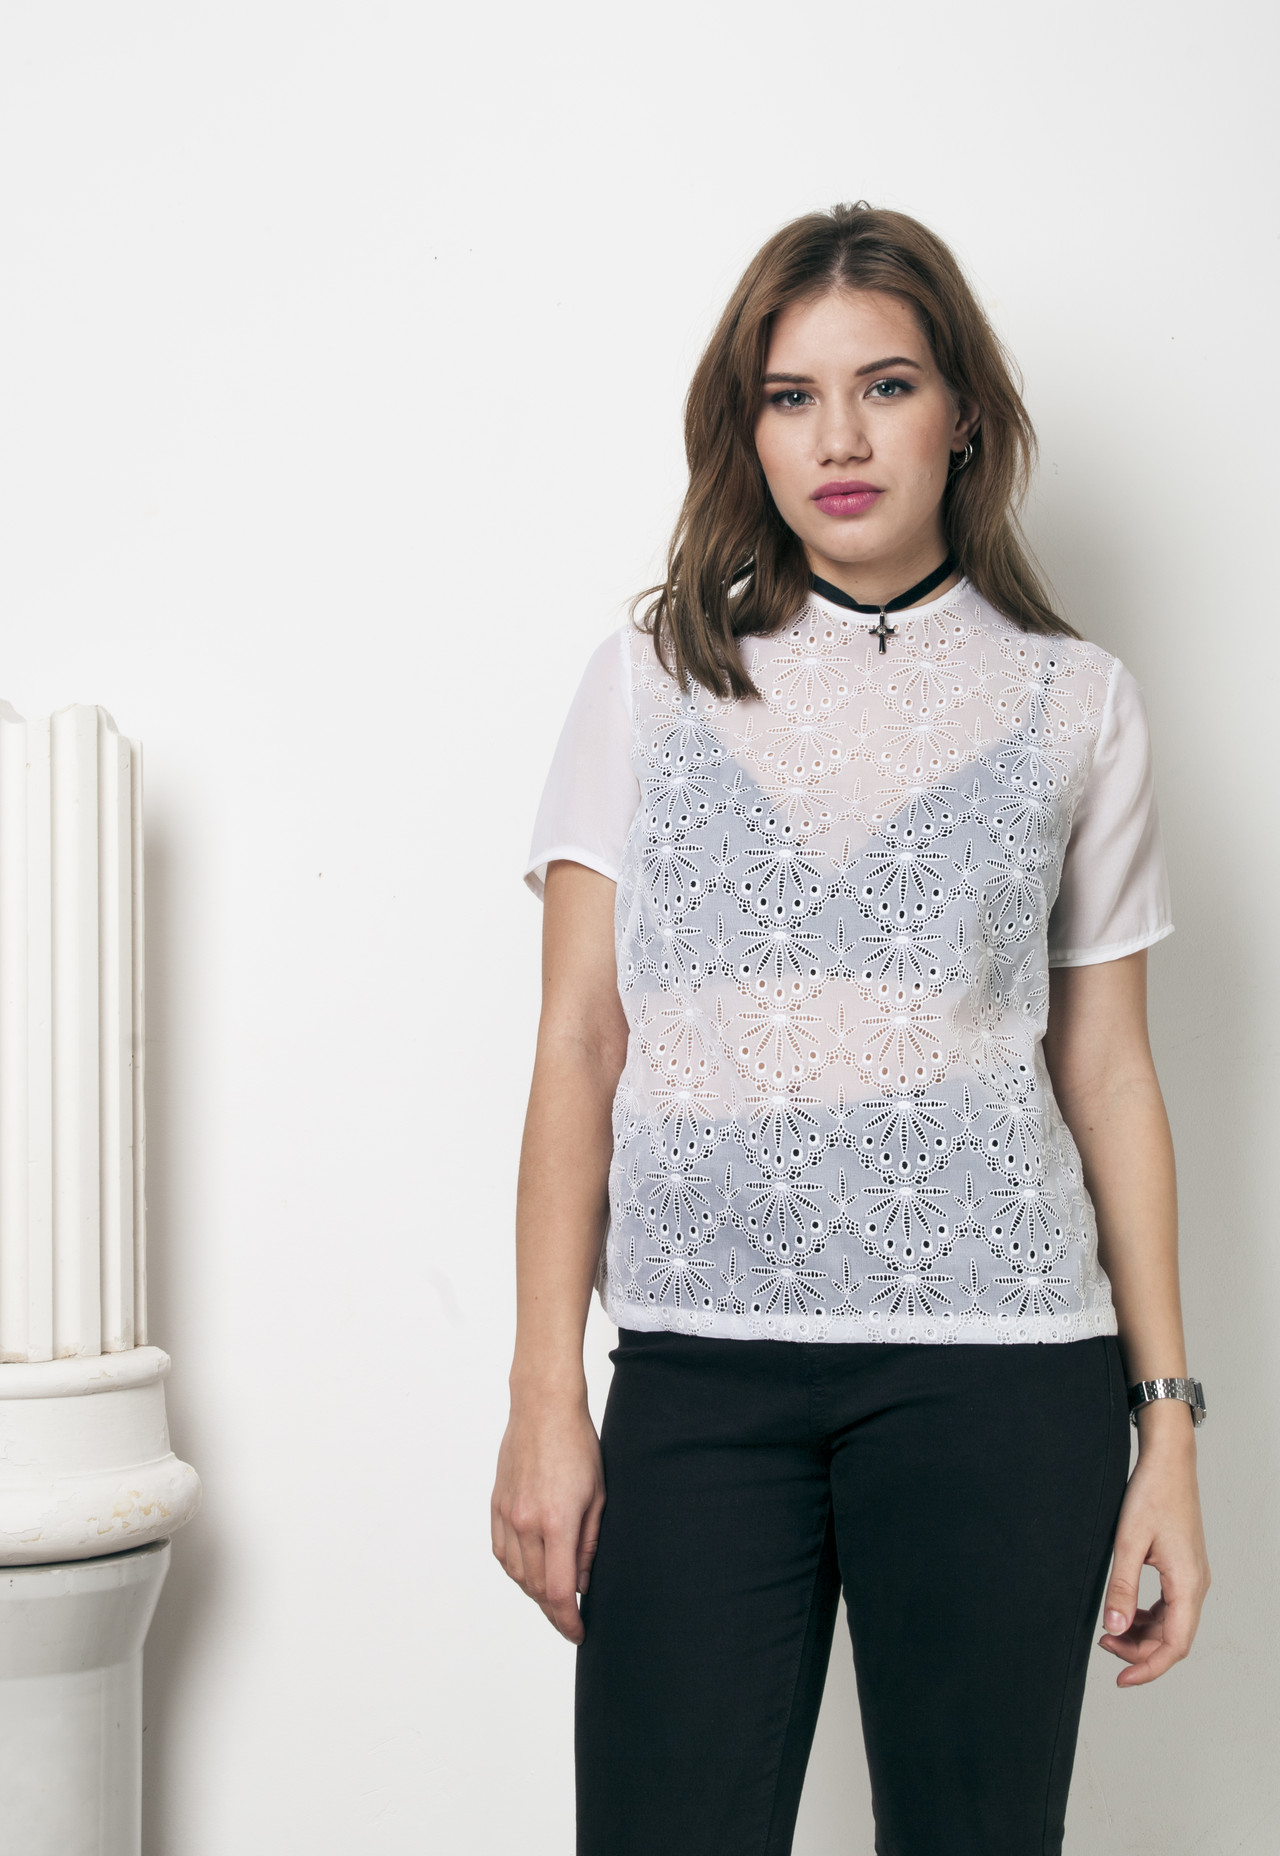 ff3e75351568a 70s vintage lace top · Pop Sick · Online Store Powered by Storenvy